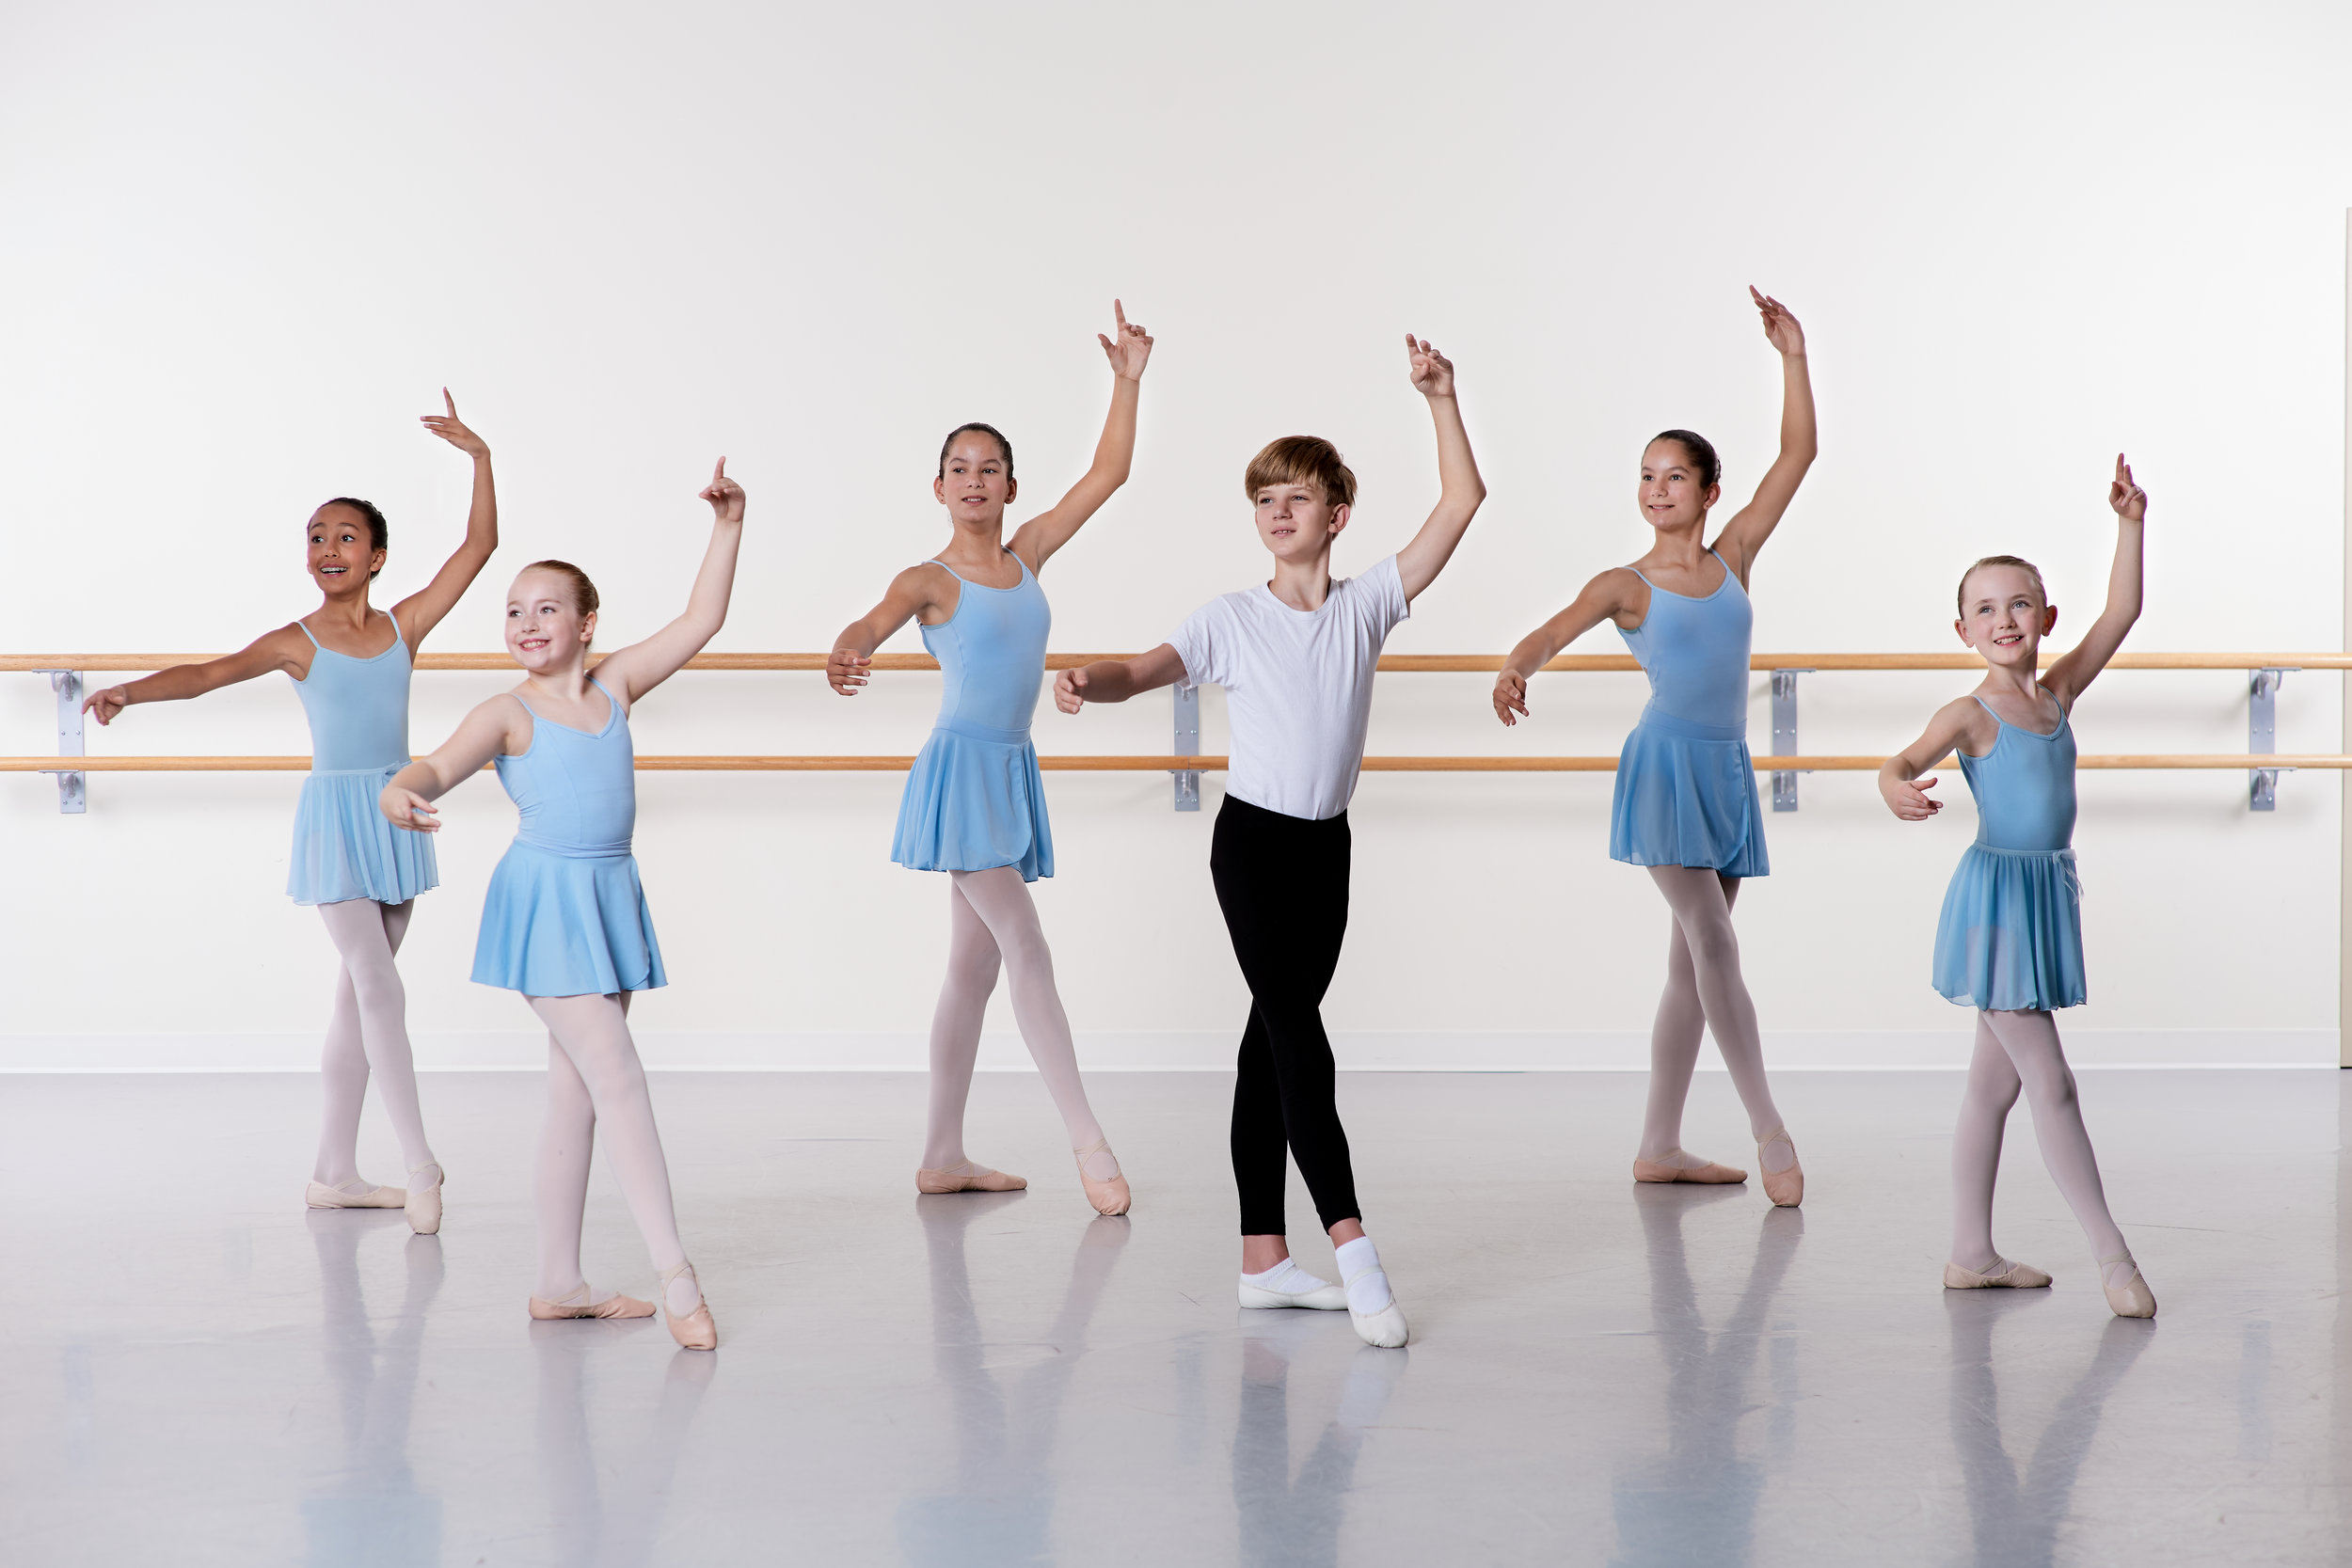 Youth Ballet III - One year of youth ballet II required-or-equivalent by evaluation